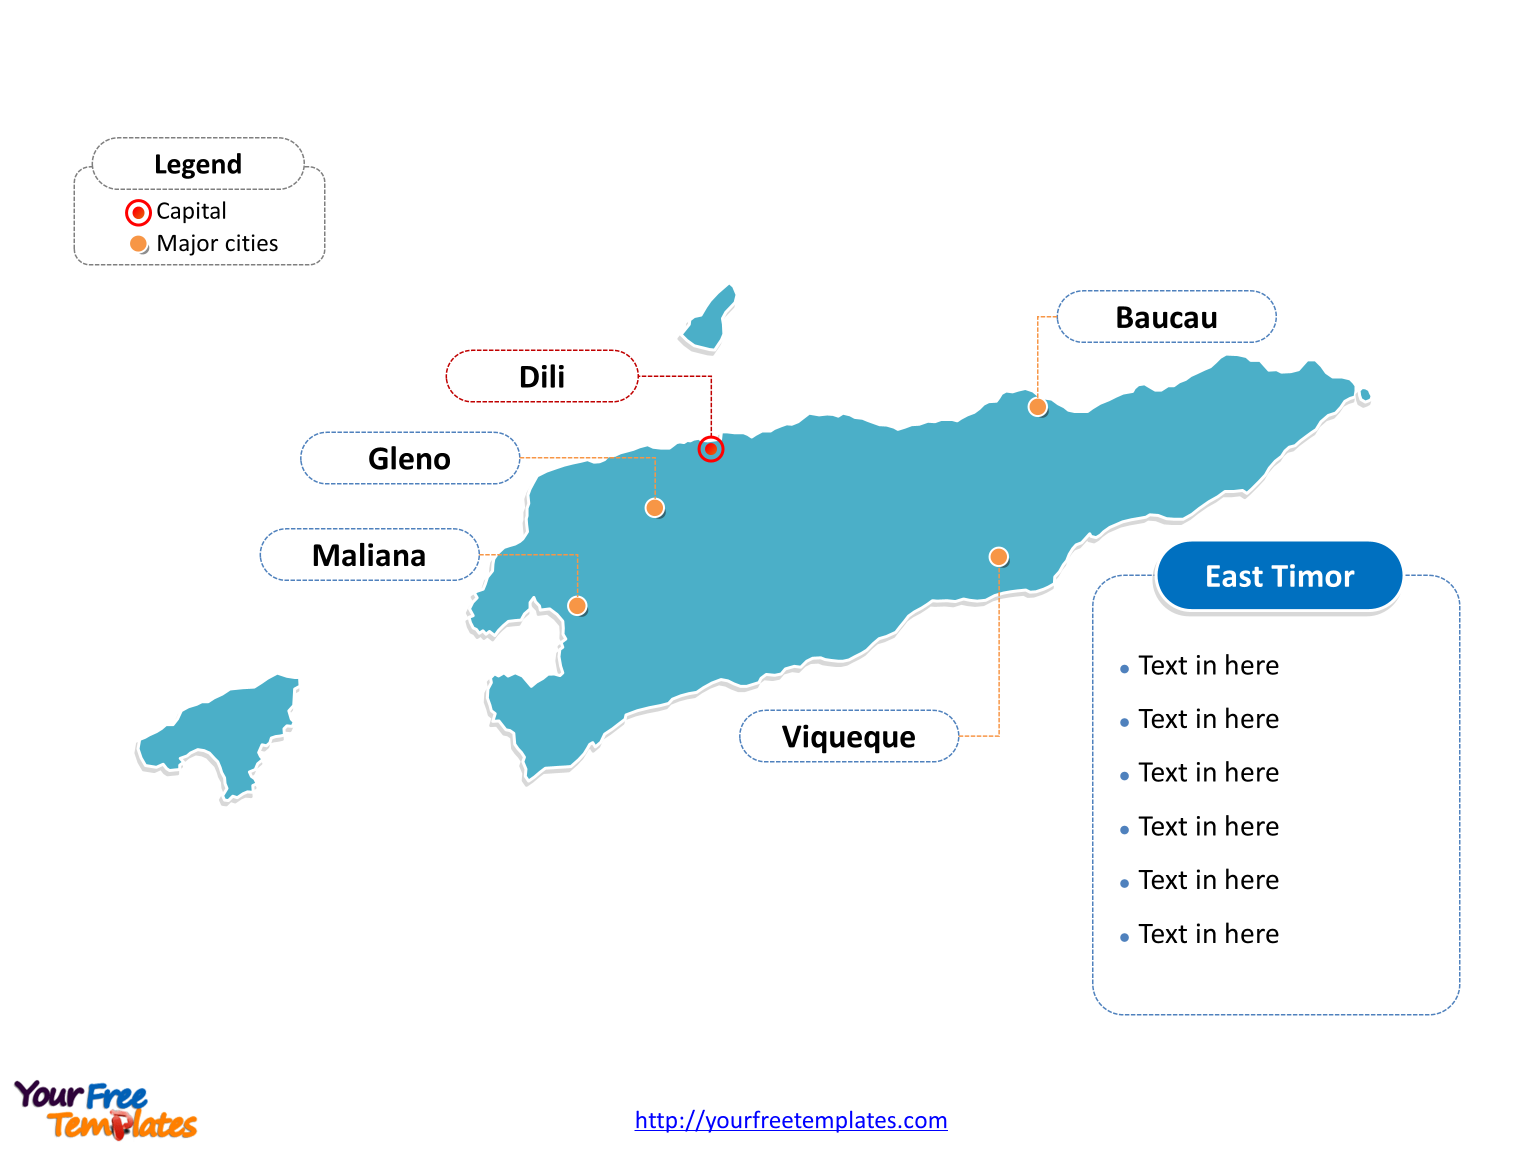 East Timor Outline map labeled with cities